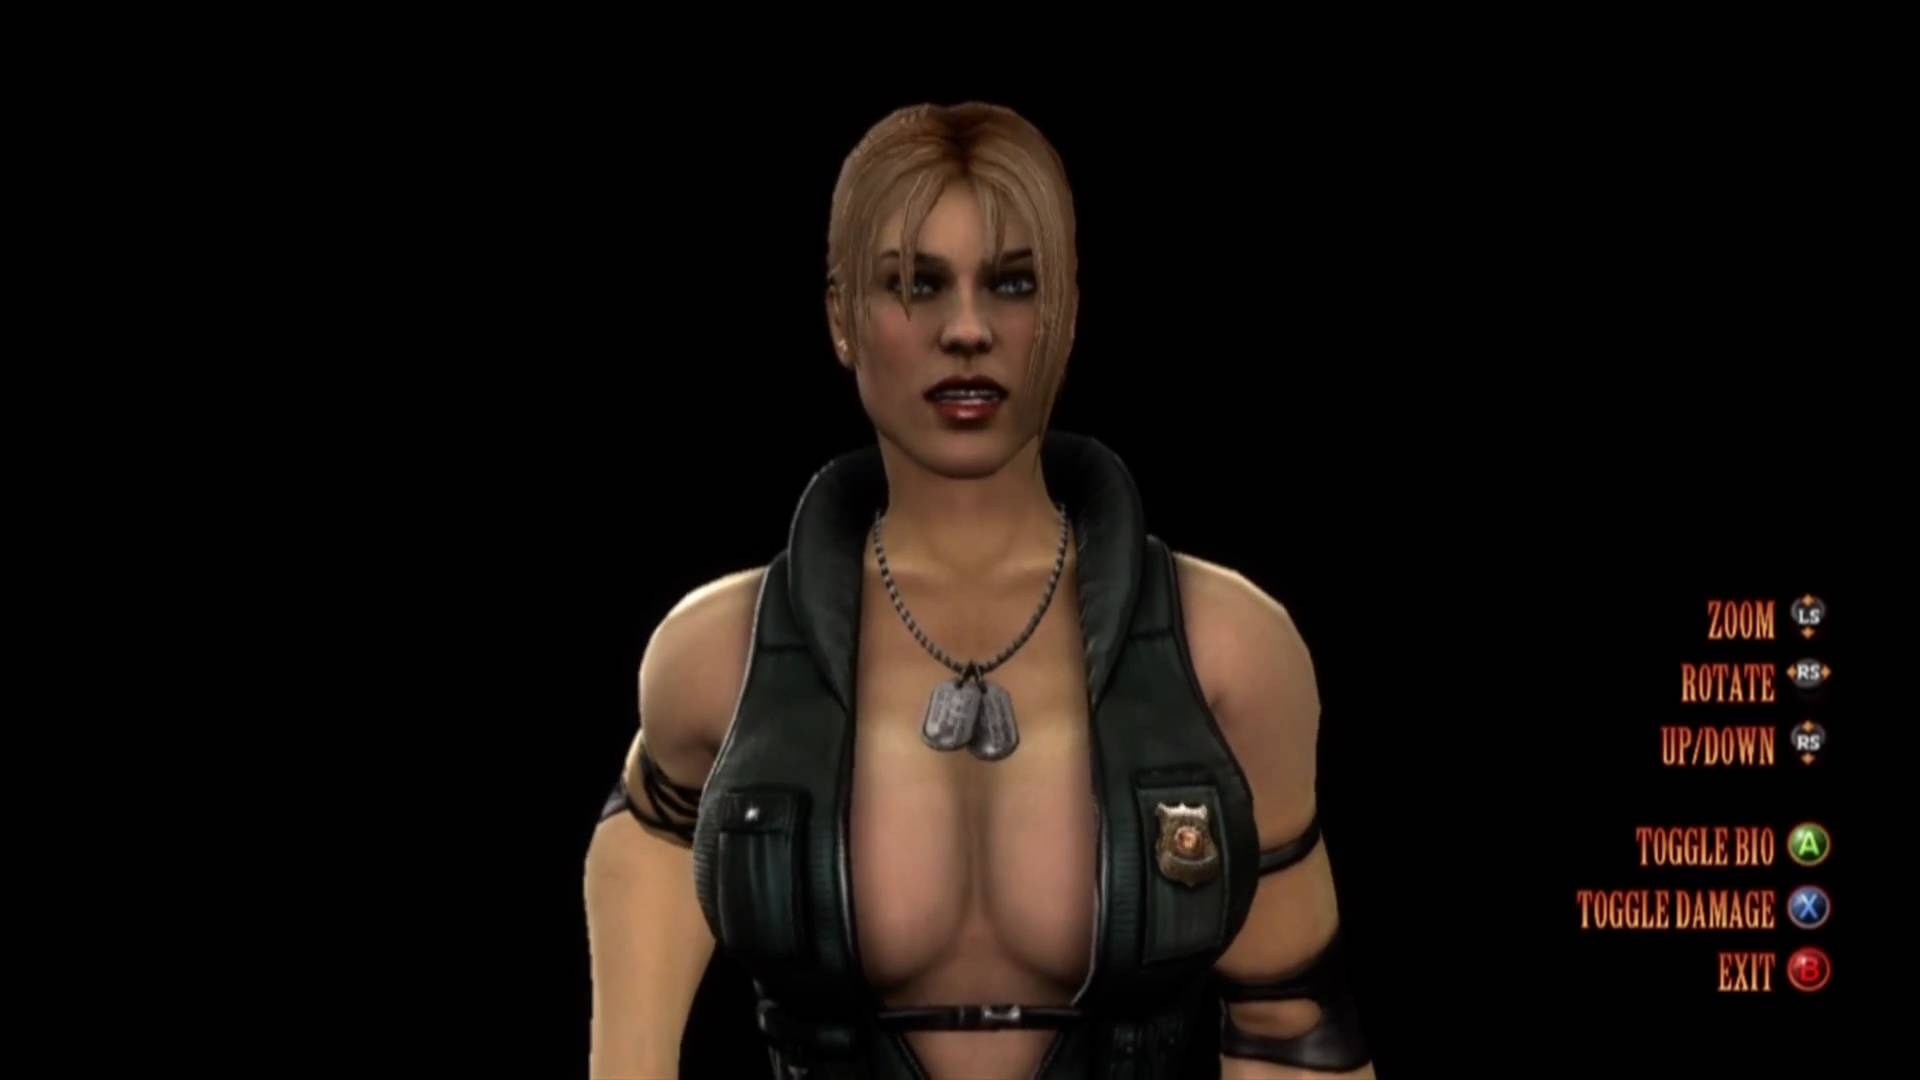 Mortal kombat 9 girls sexuality softcore comic